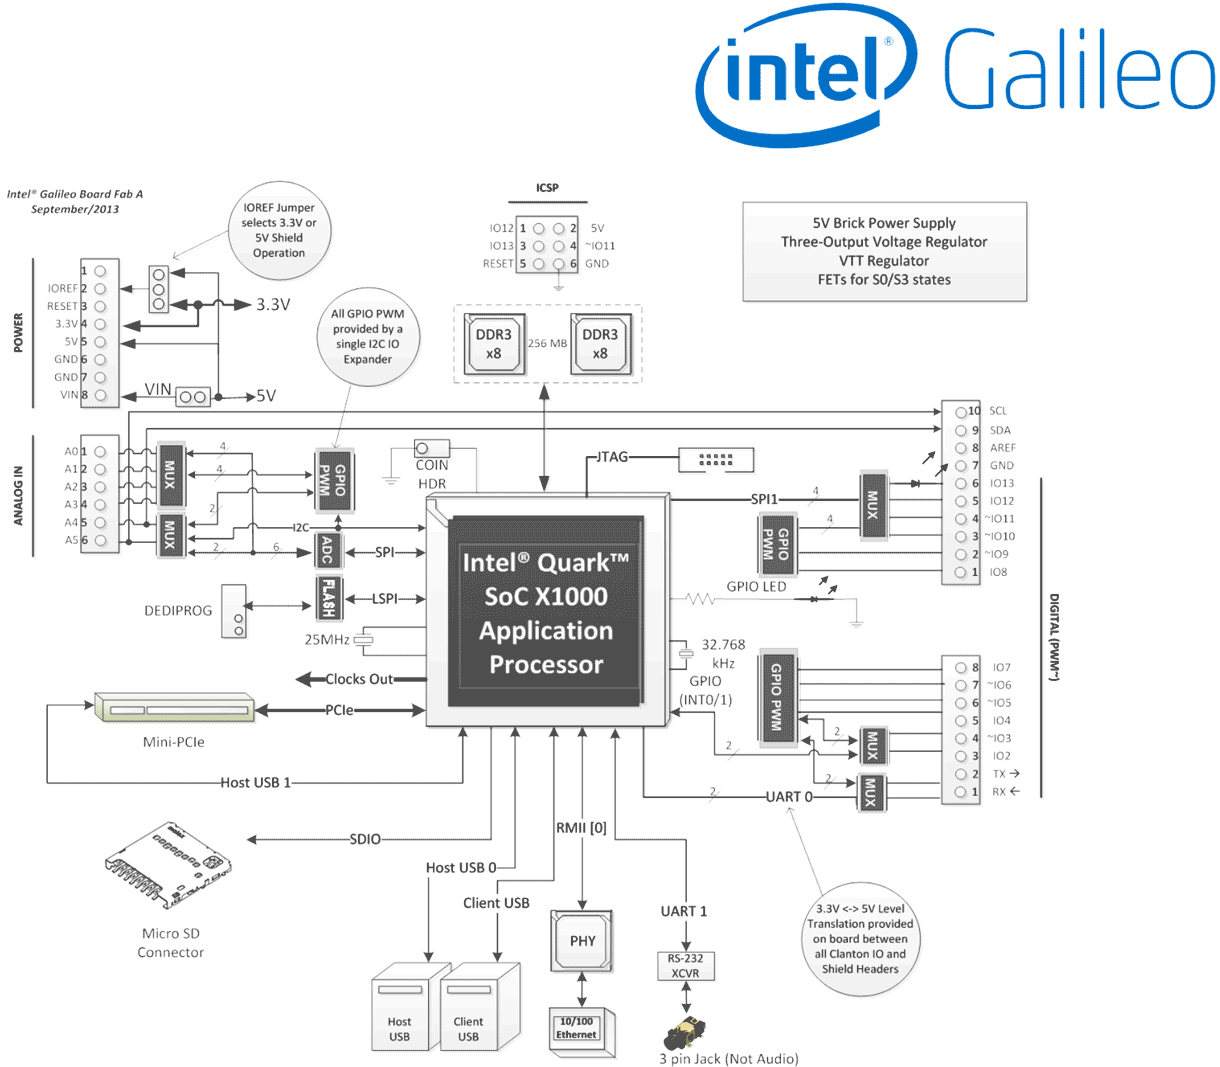 An electronics schematic for Galileo boards